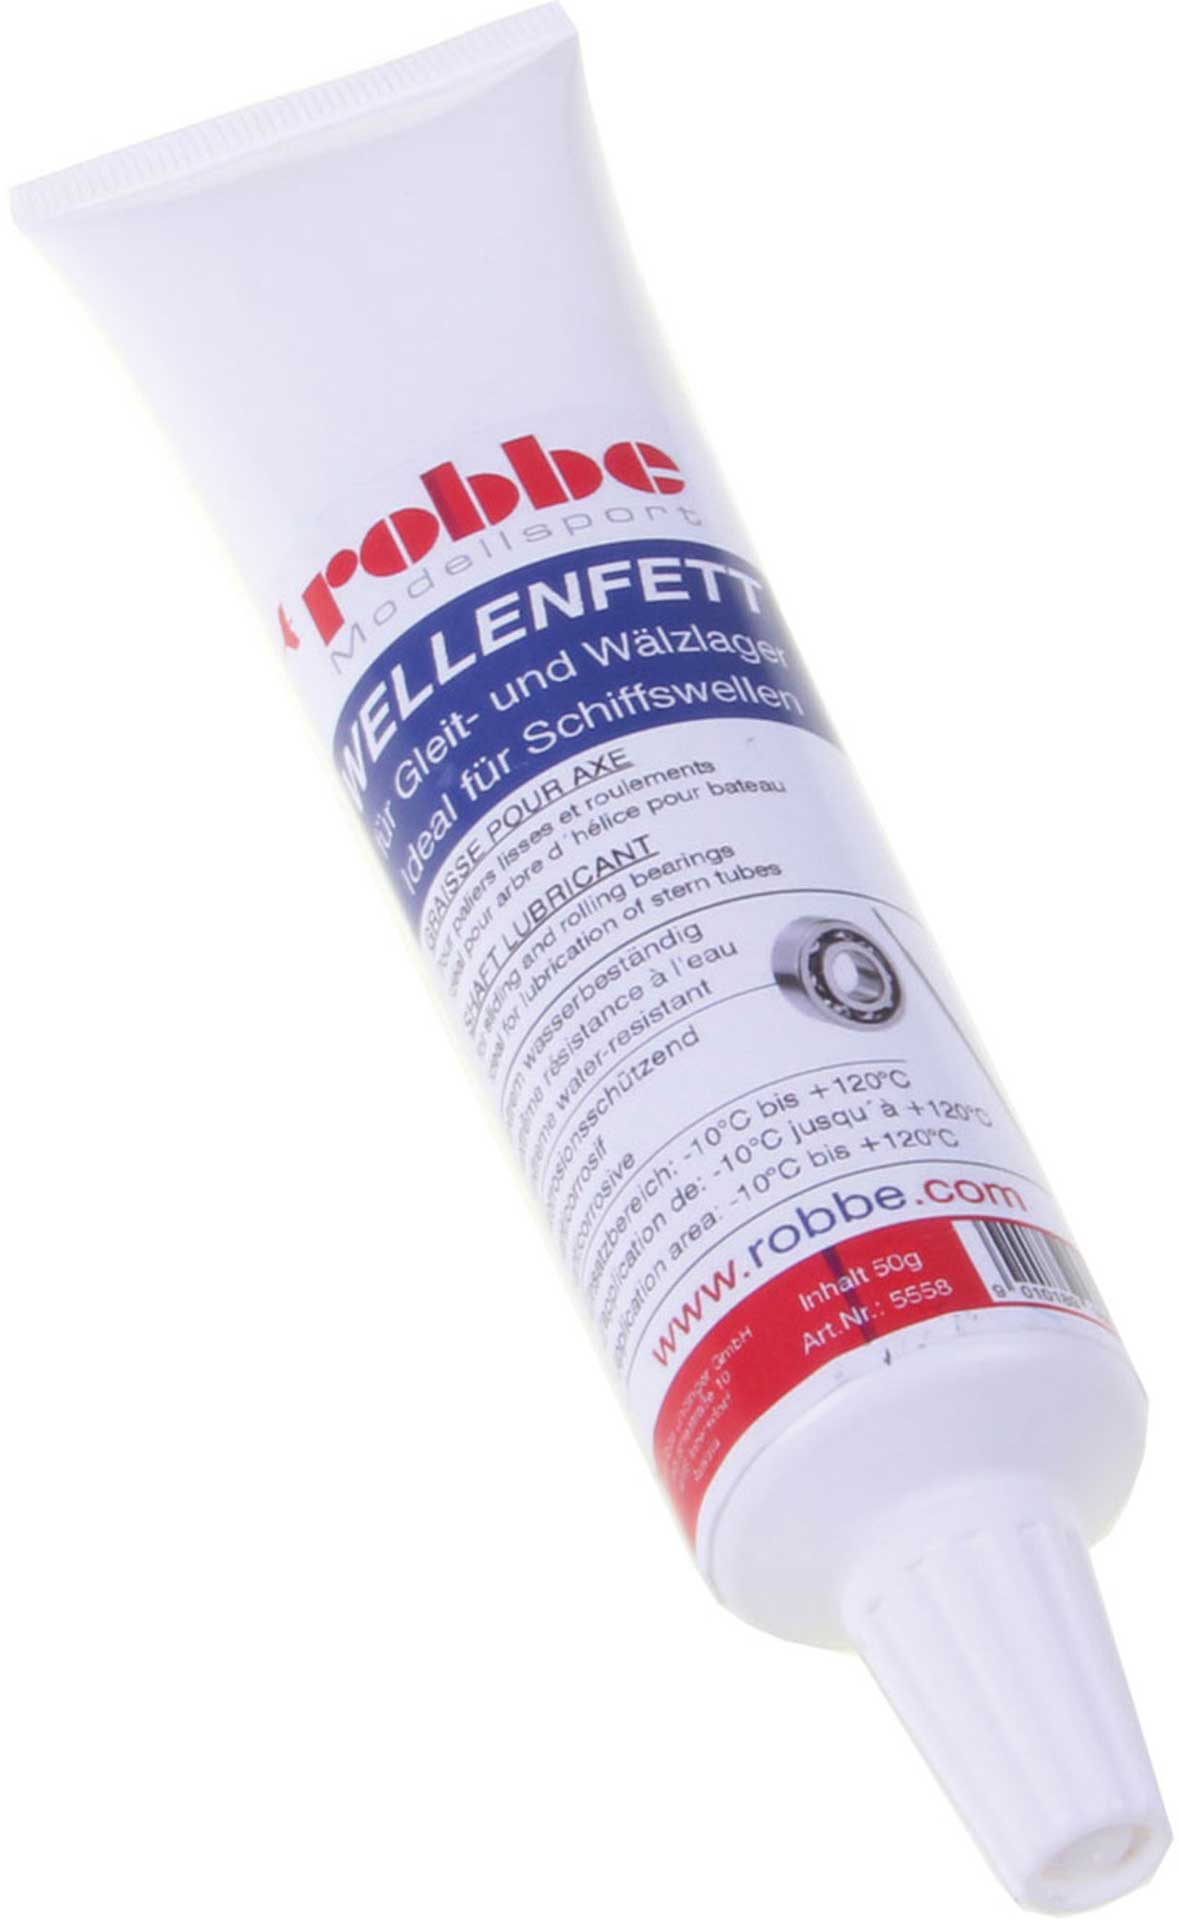 ROBBE WAVE GREASE SPECIAL 50G